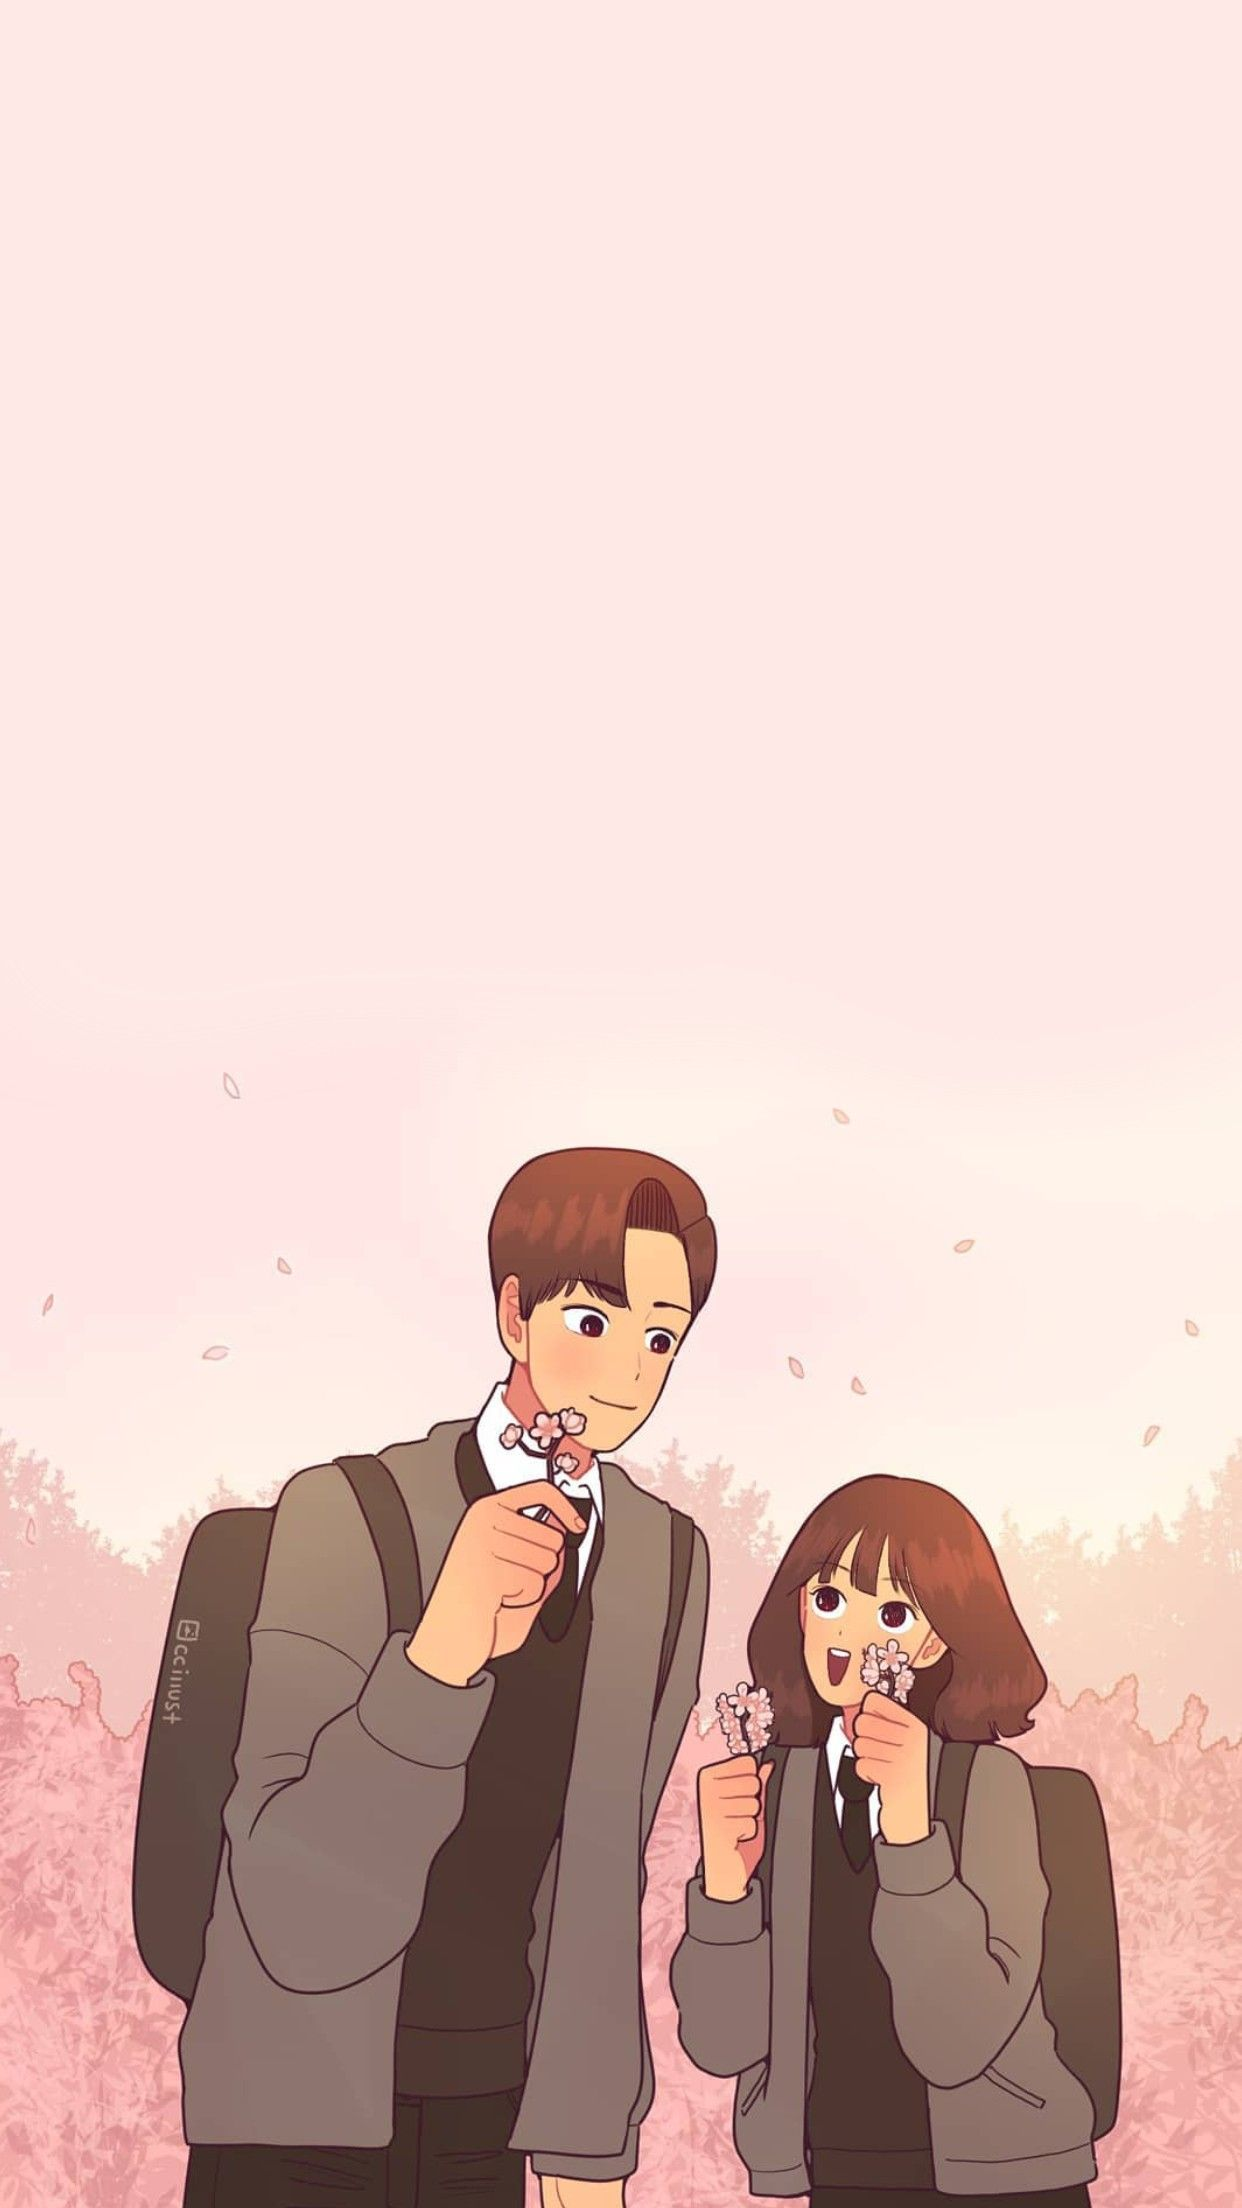 Cartoon Couple Couple Cartoon Ig Korean Wallpaper Lucu Ilustrasi Karakter Seni Animasi